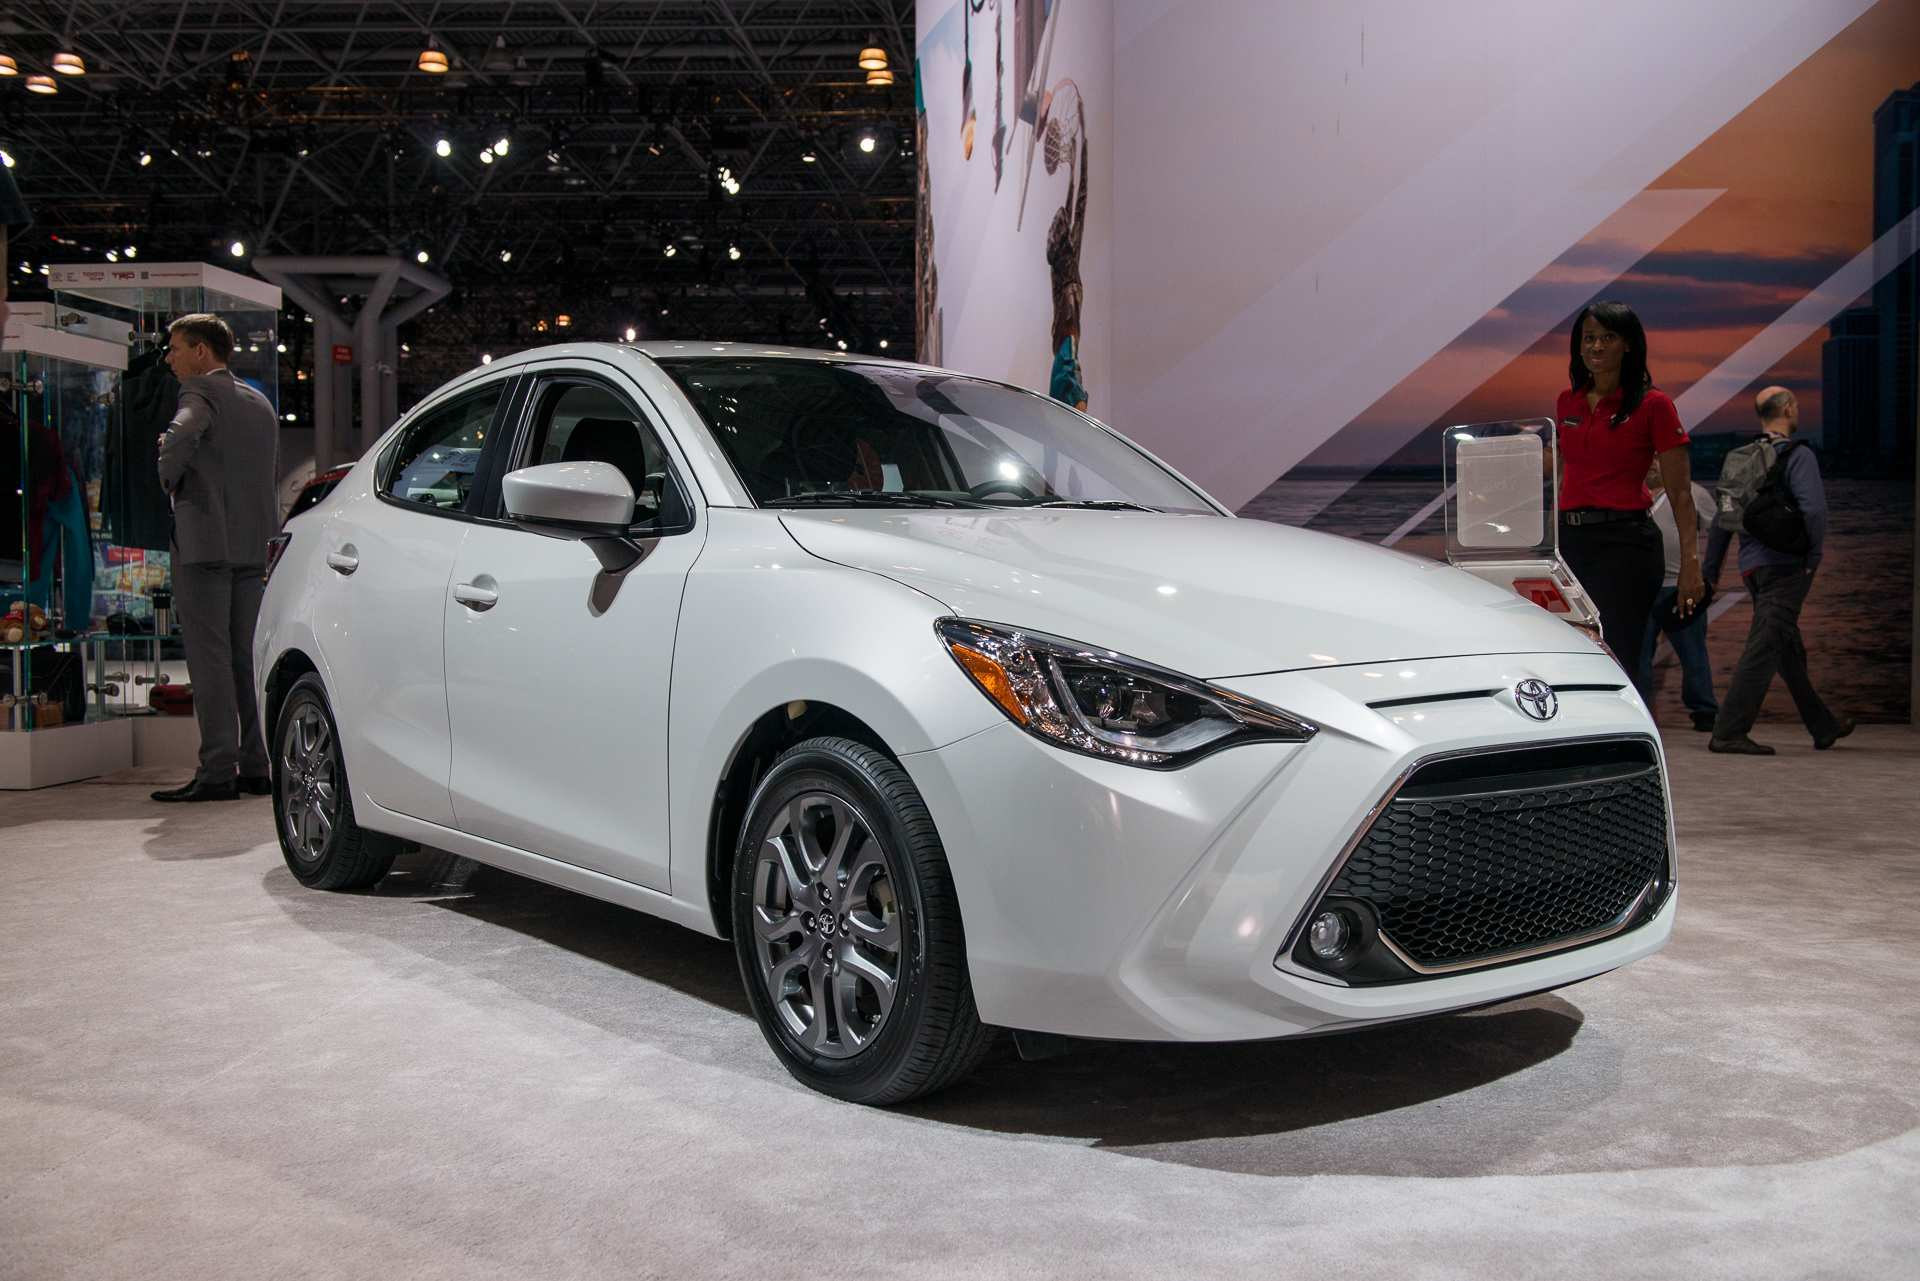 66 Best Review Toyota Yaris 2019 Europe Interior for Toyota Yaris 2019 Europe